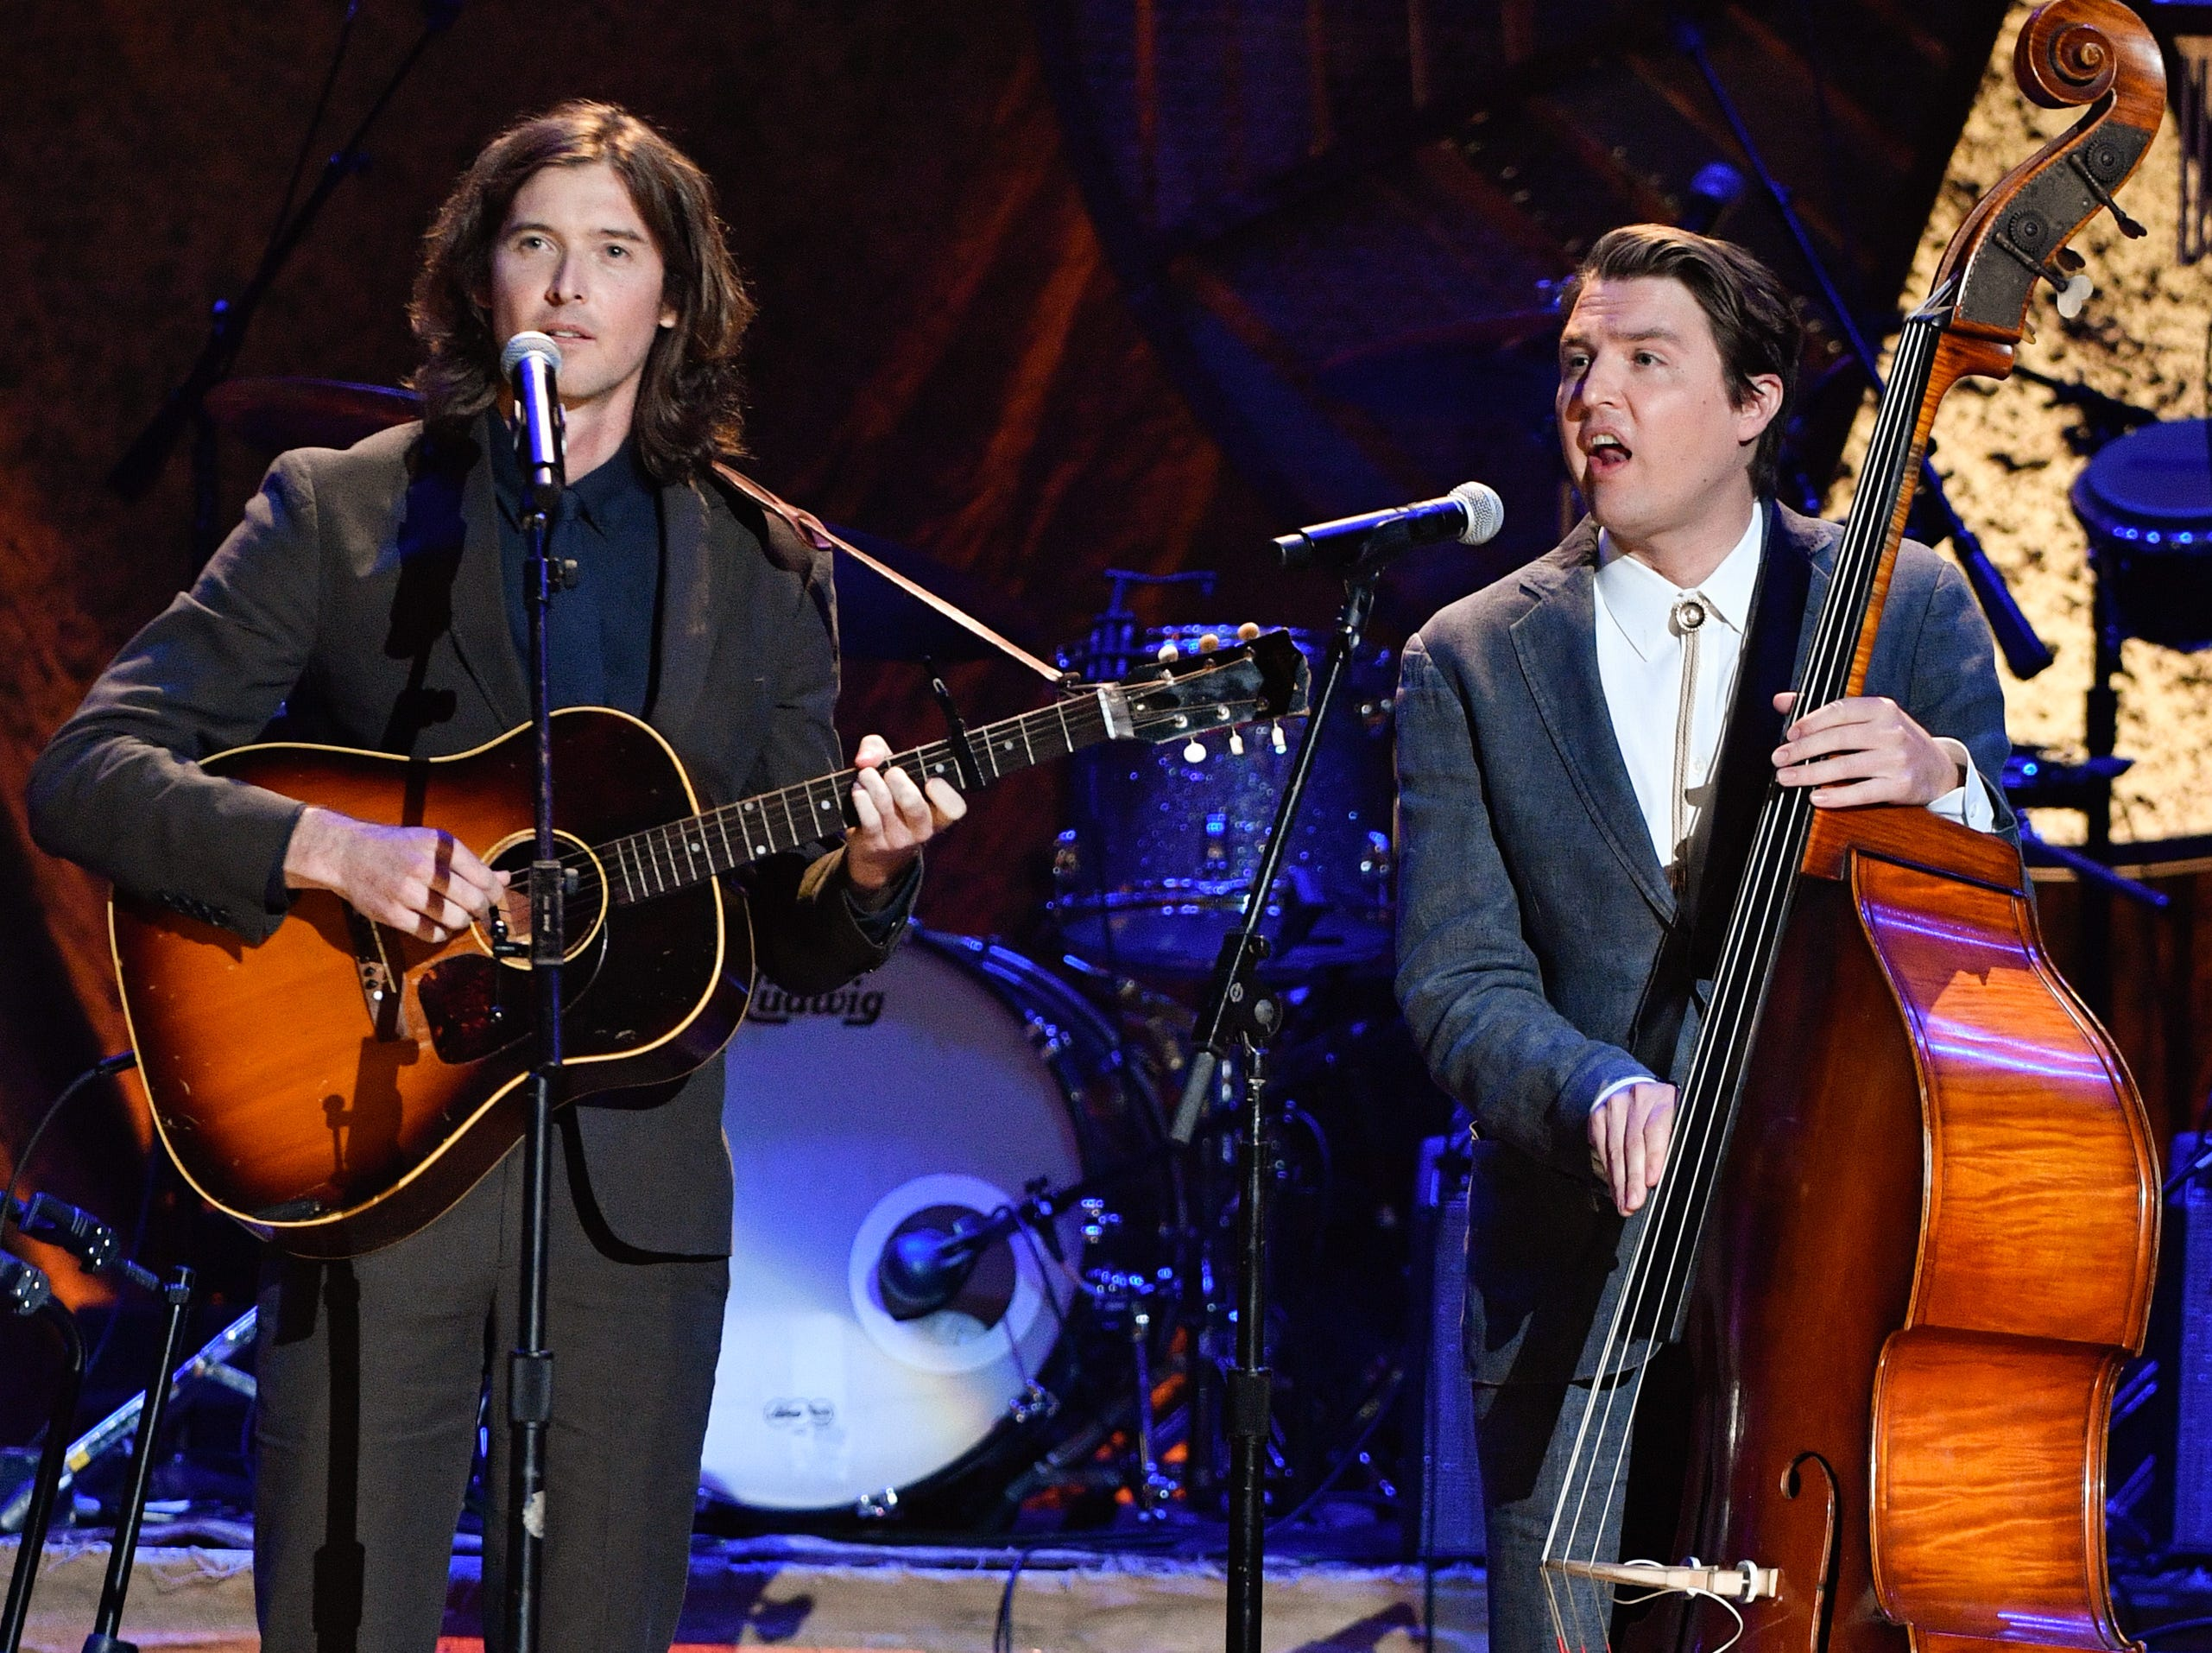 The Milk Carton Kids perform during the 2018 Americana Honors and Awards show at the Ryman Auditorium in Nashville, Tenn., Wednesday, Sept. 12, 2018.